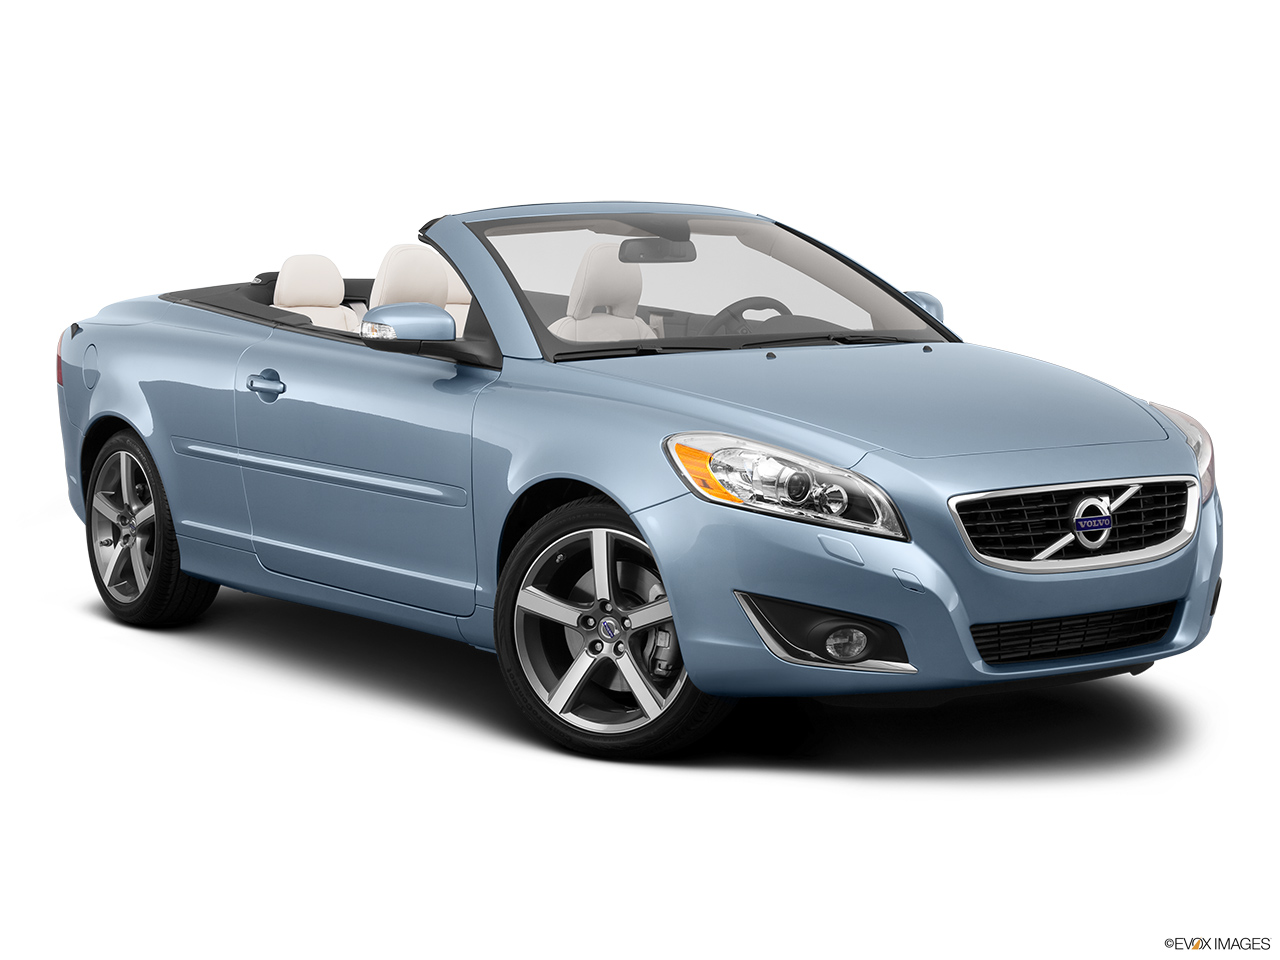 2013 Volvo C70 T5 Platinum Front passenger 3/4 w/ wheels turned.